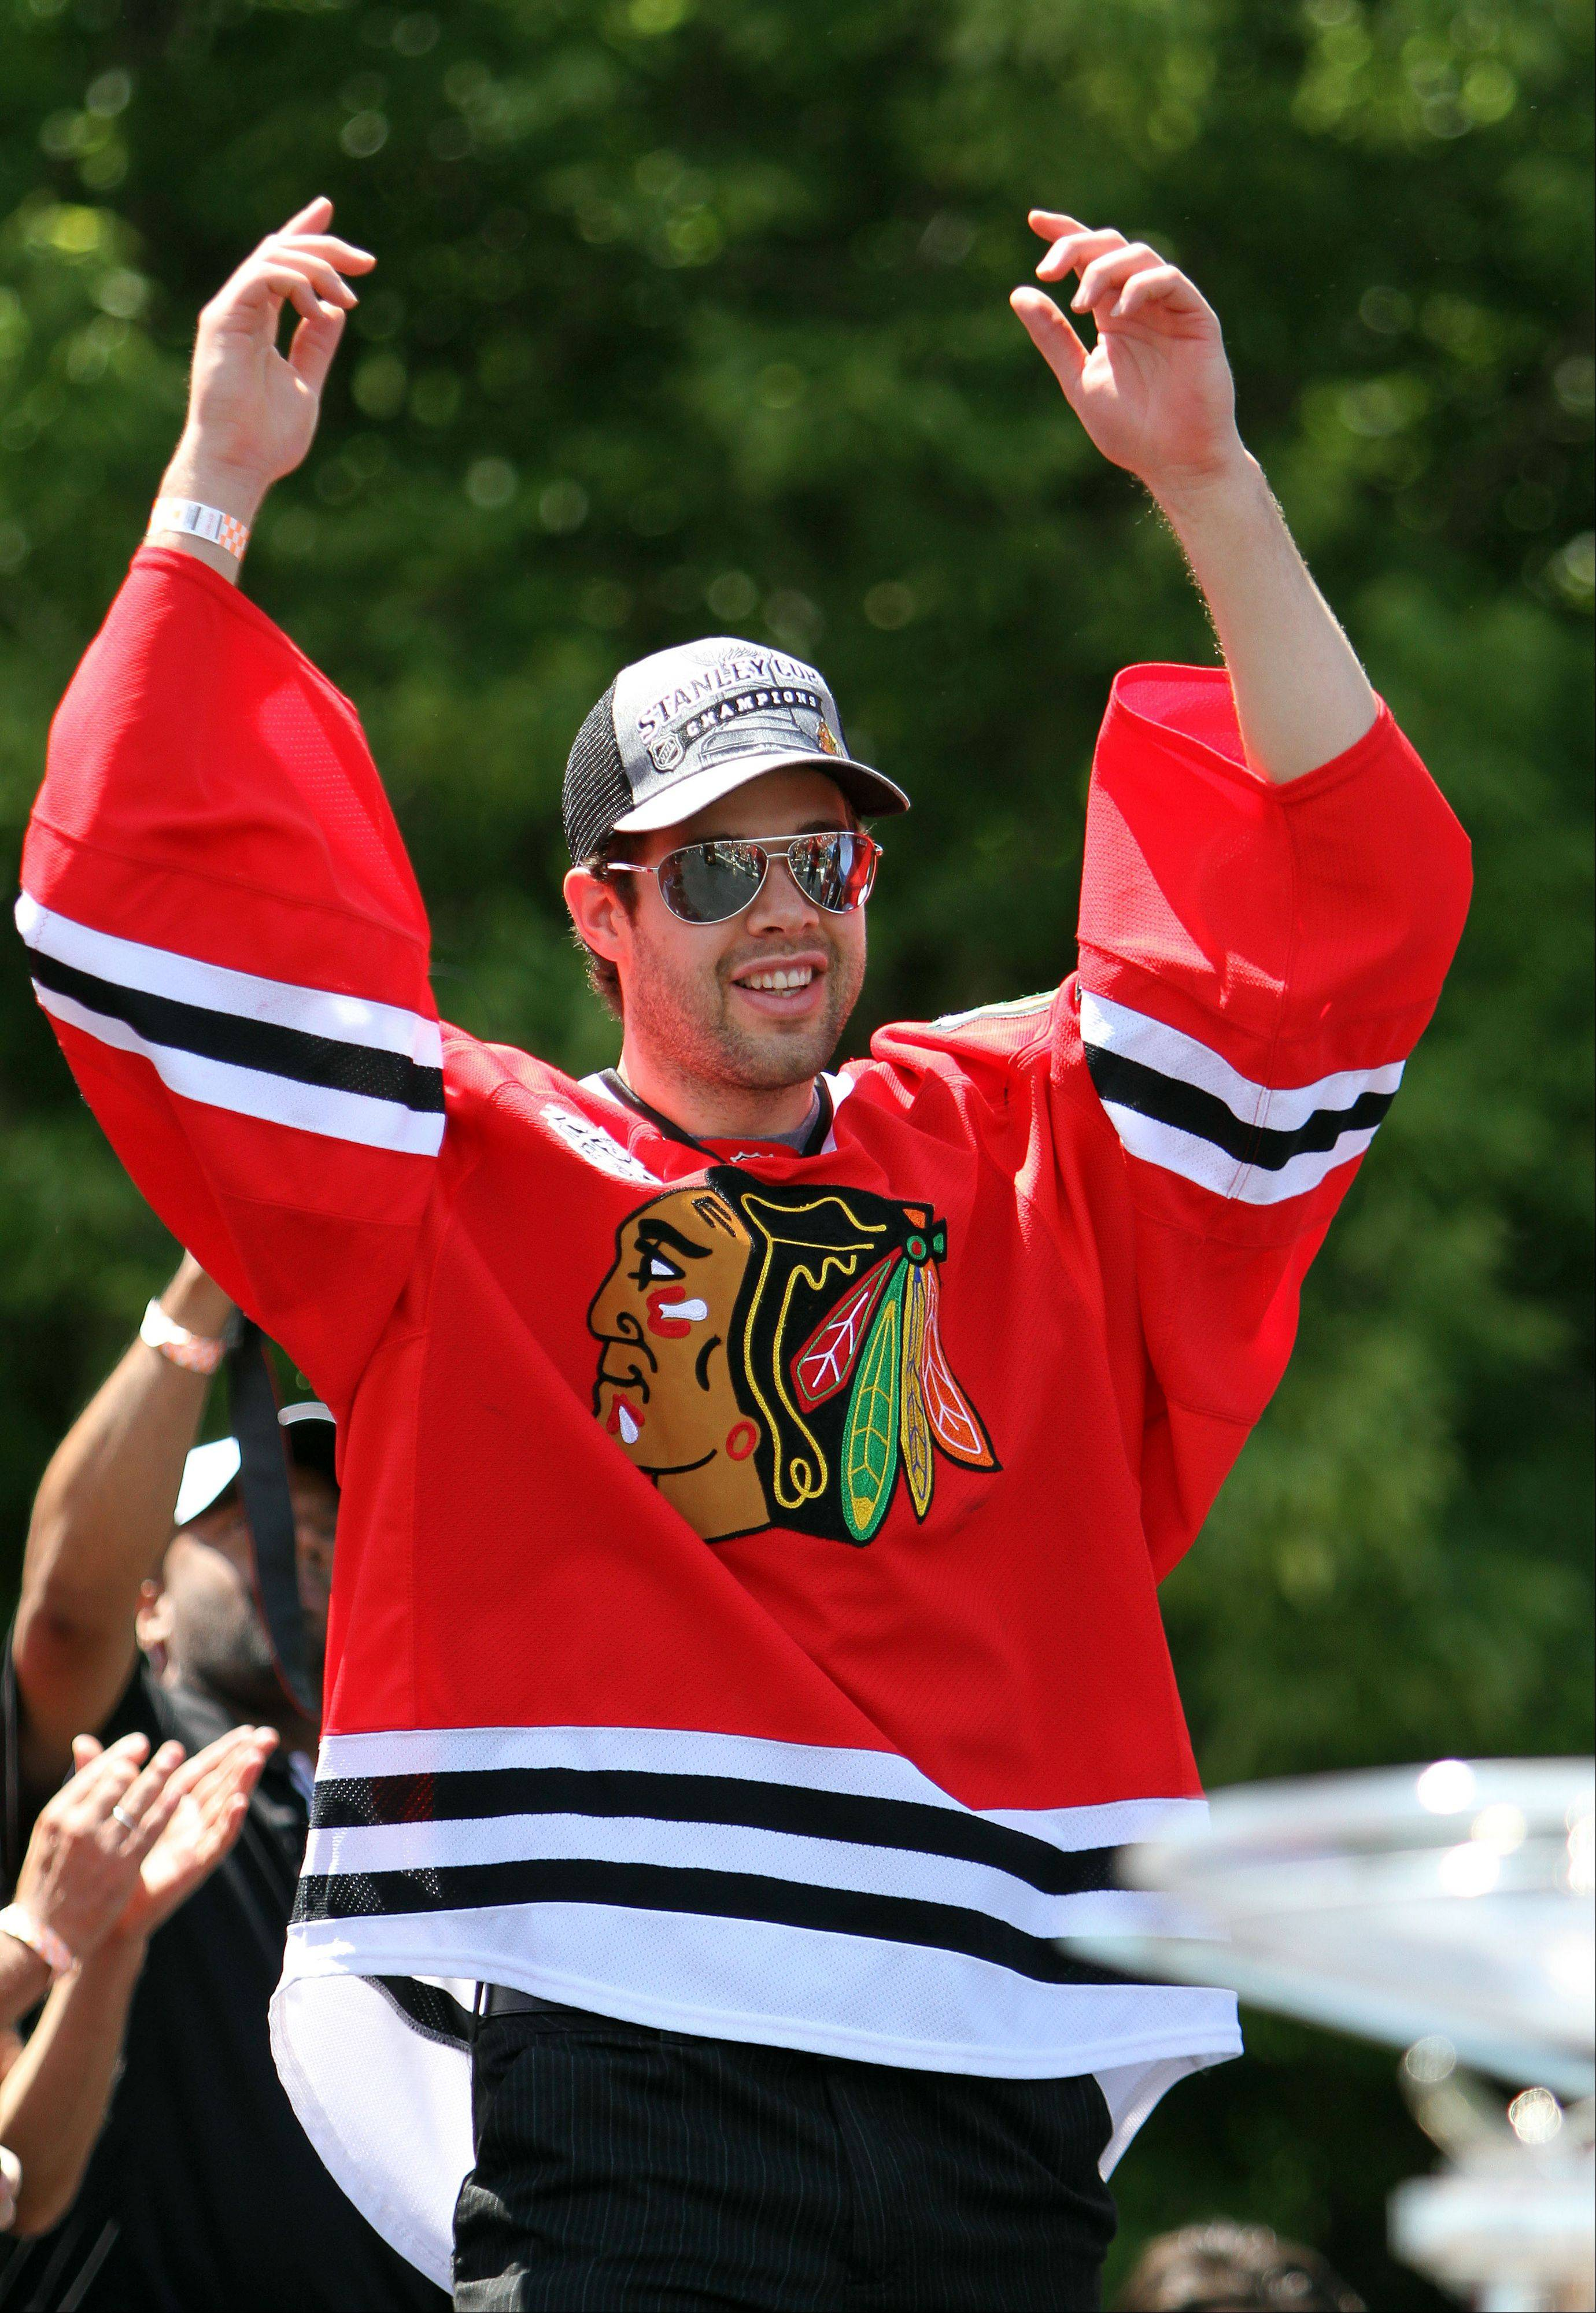 Corey Crawford was in a celebratory state during the Blackhawks' Stanley Cup rally at Hutchinson Field in Chicago last June. The 28-year-old goaltender has more reasons to celebrate: his engagement and a six-year contract extension with the Hawks.